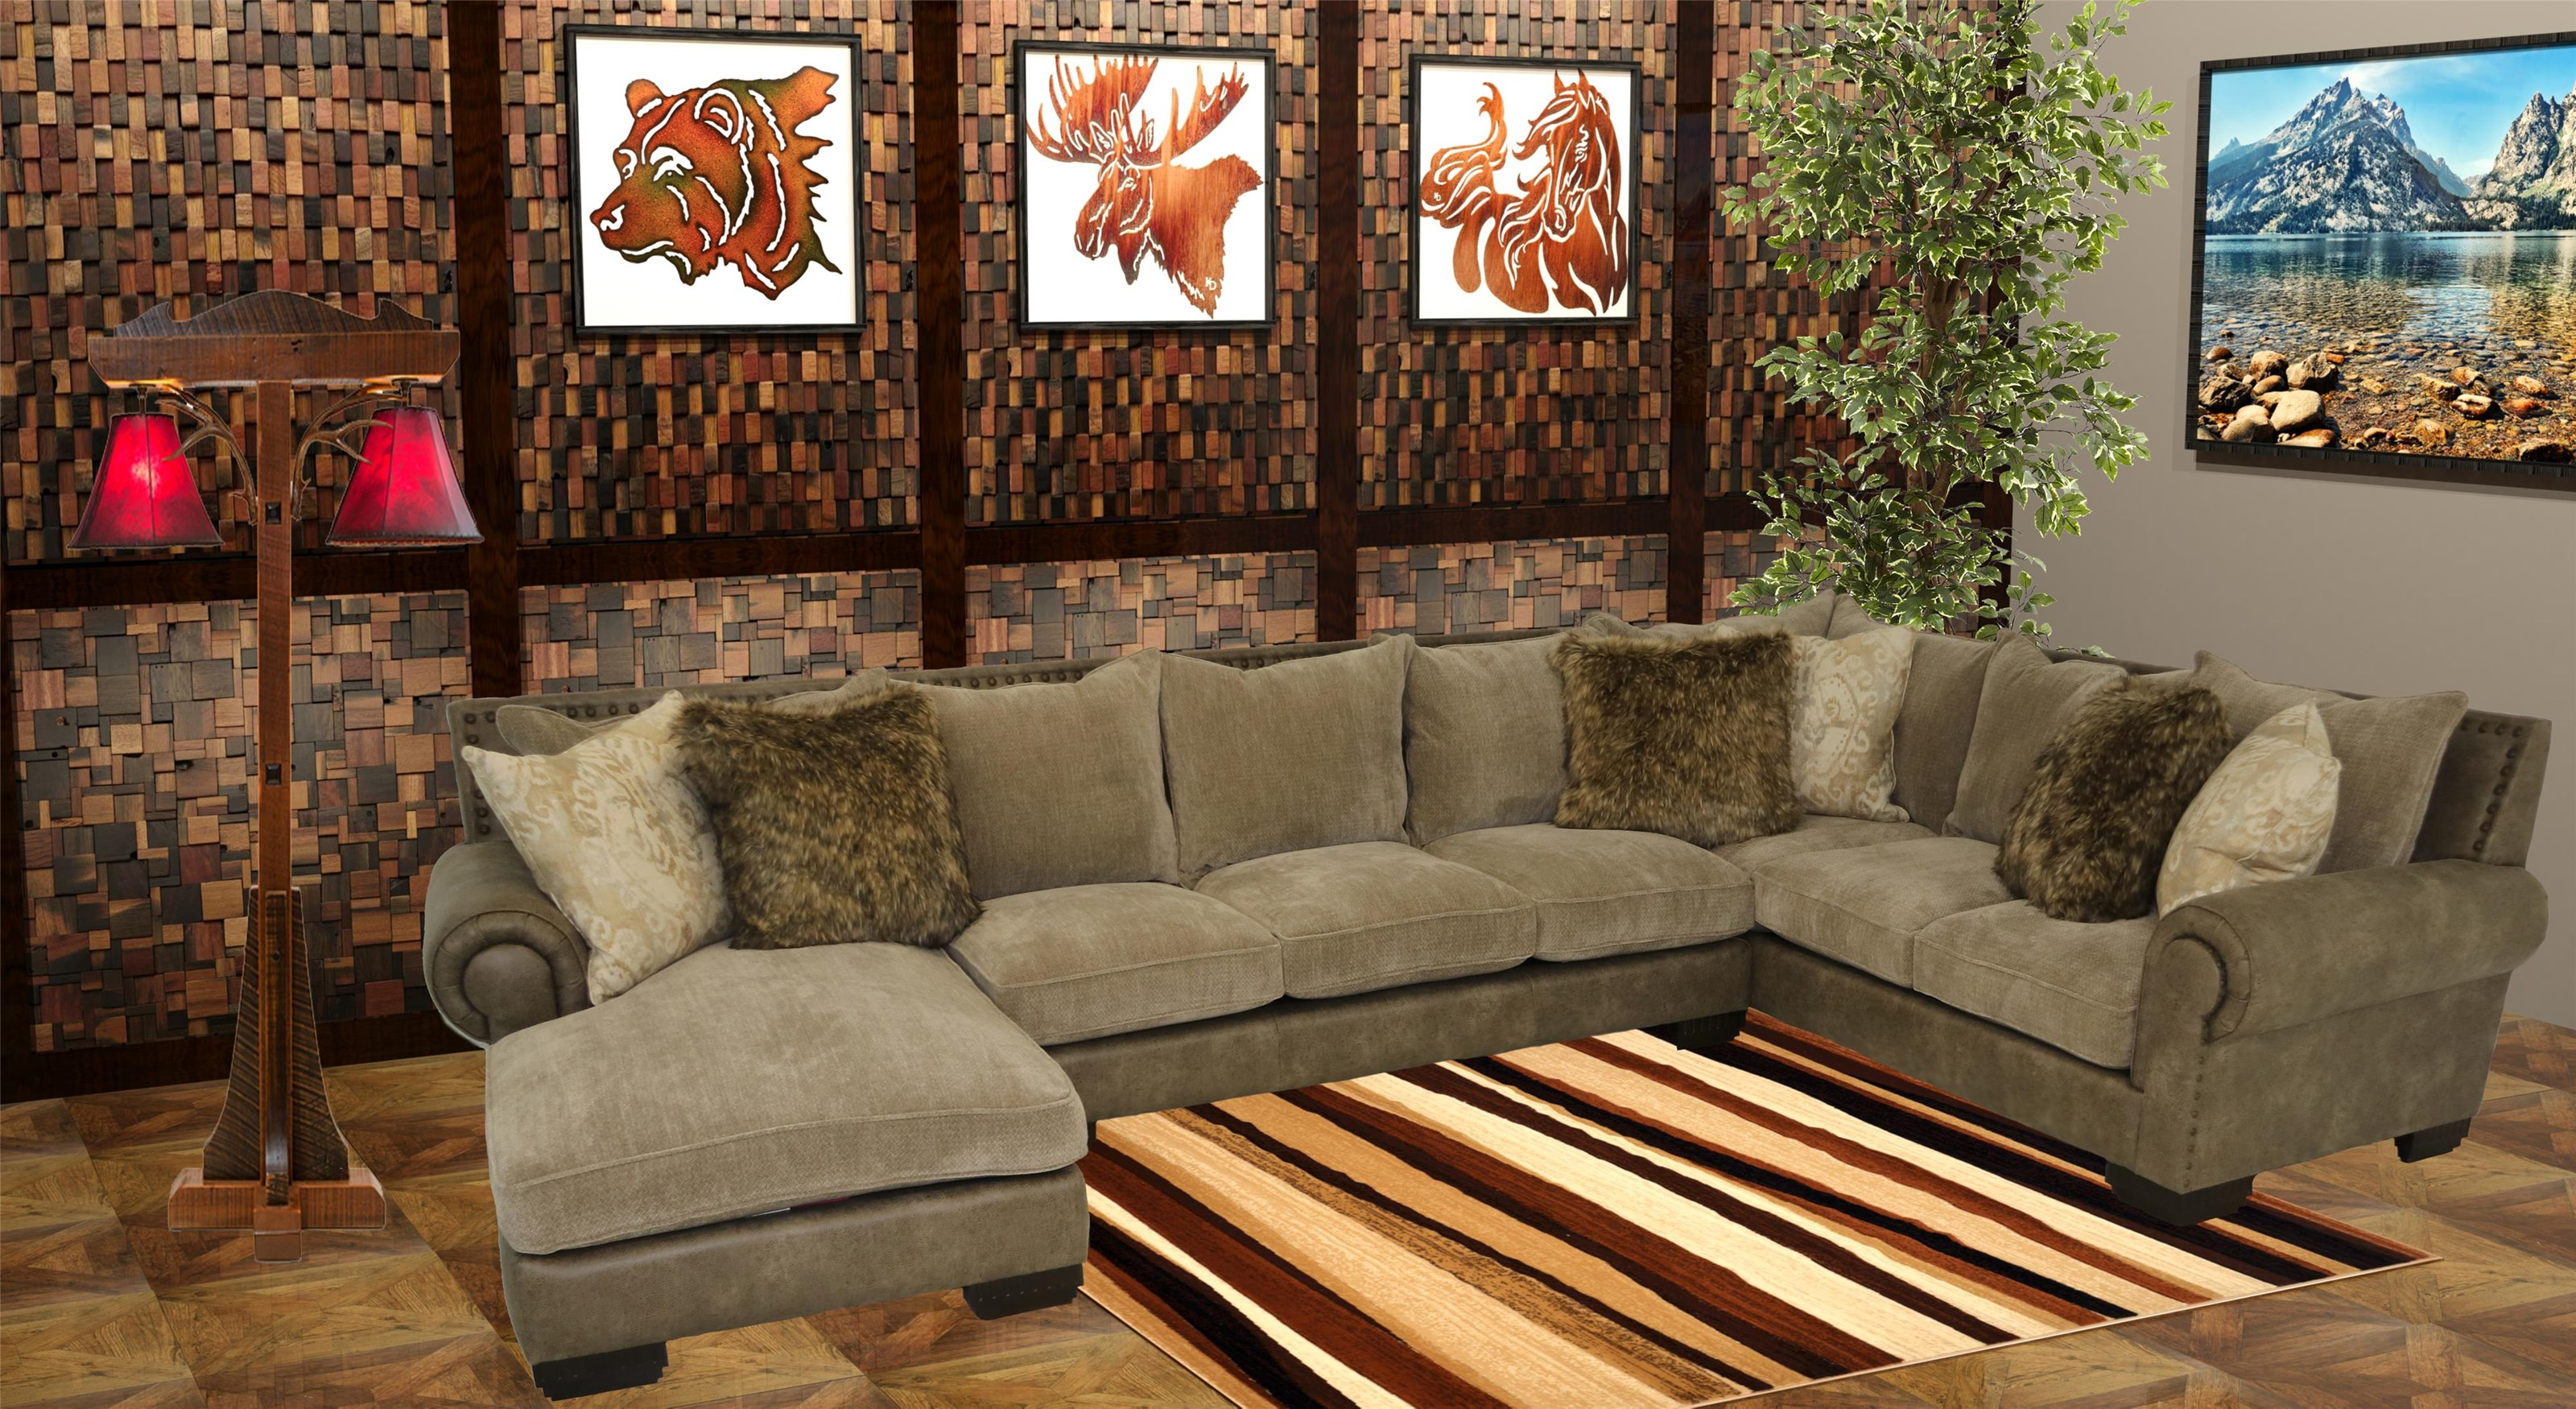 Reeds Trading Company 3000 3 Piece Sectional - Item Number: 3000-AL Sofa+Laf Chaise+Raf Tux